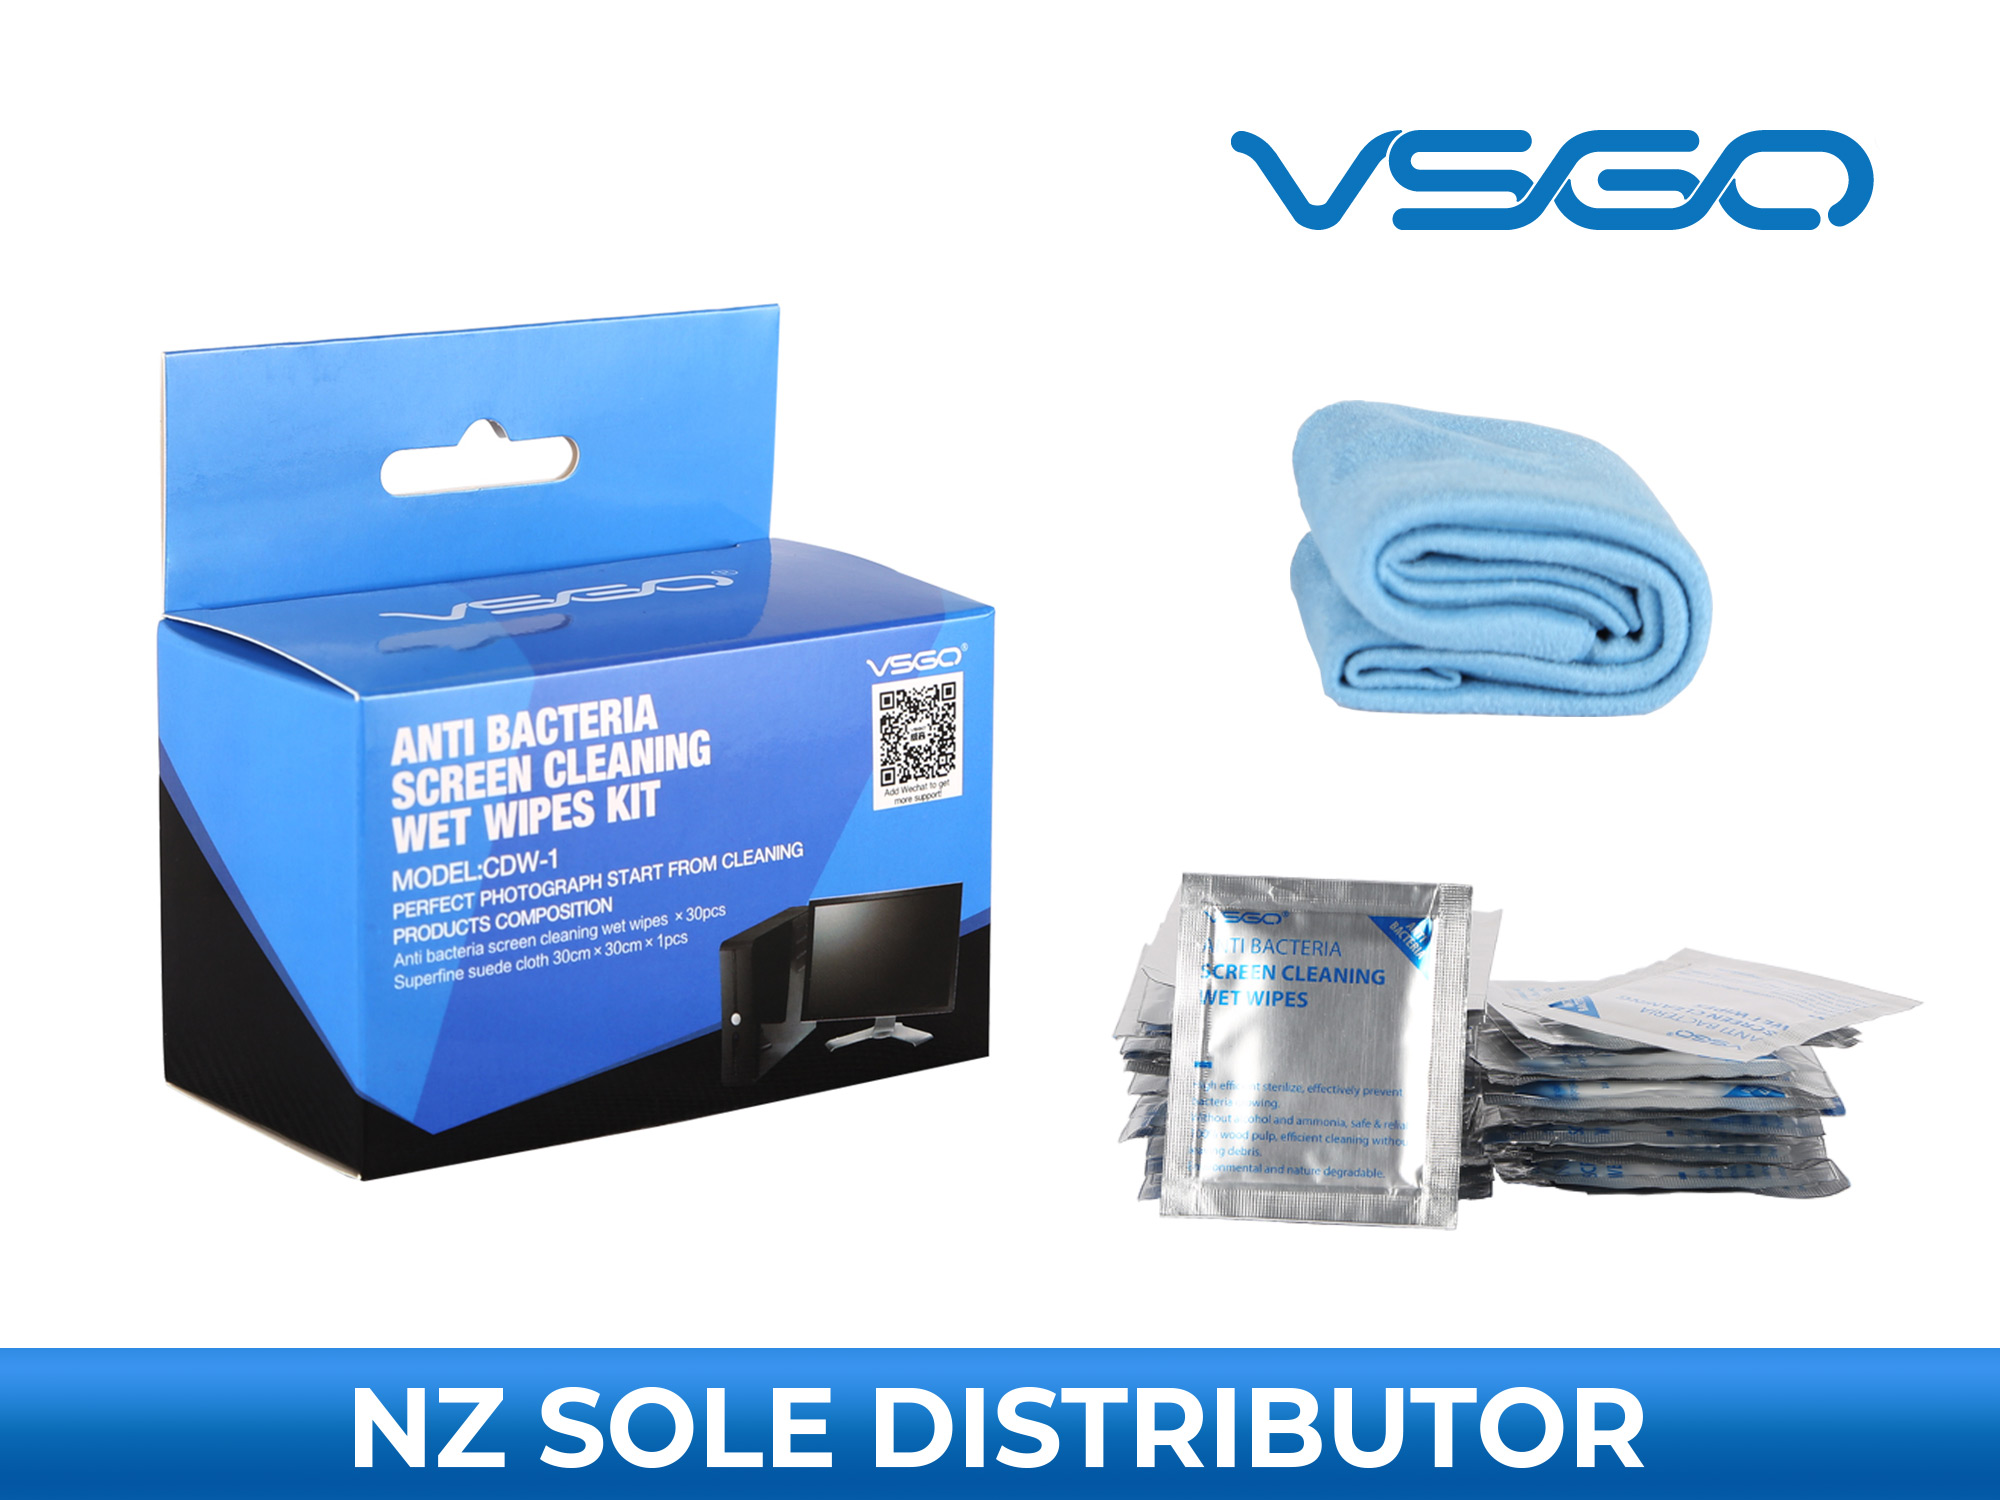 VSGO Screen Cleaning Wet Wipes Kit